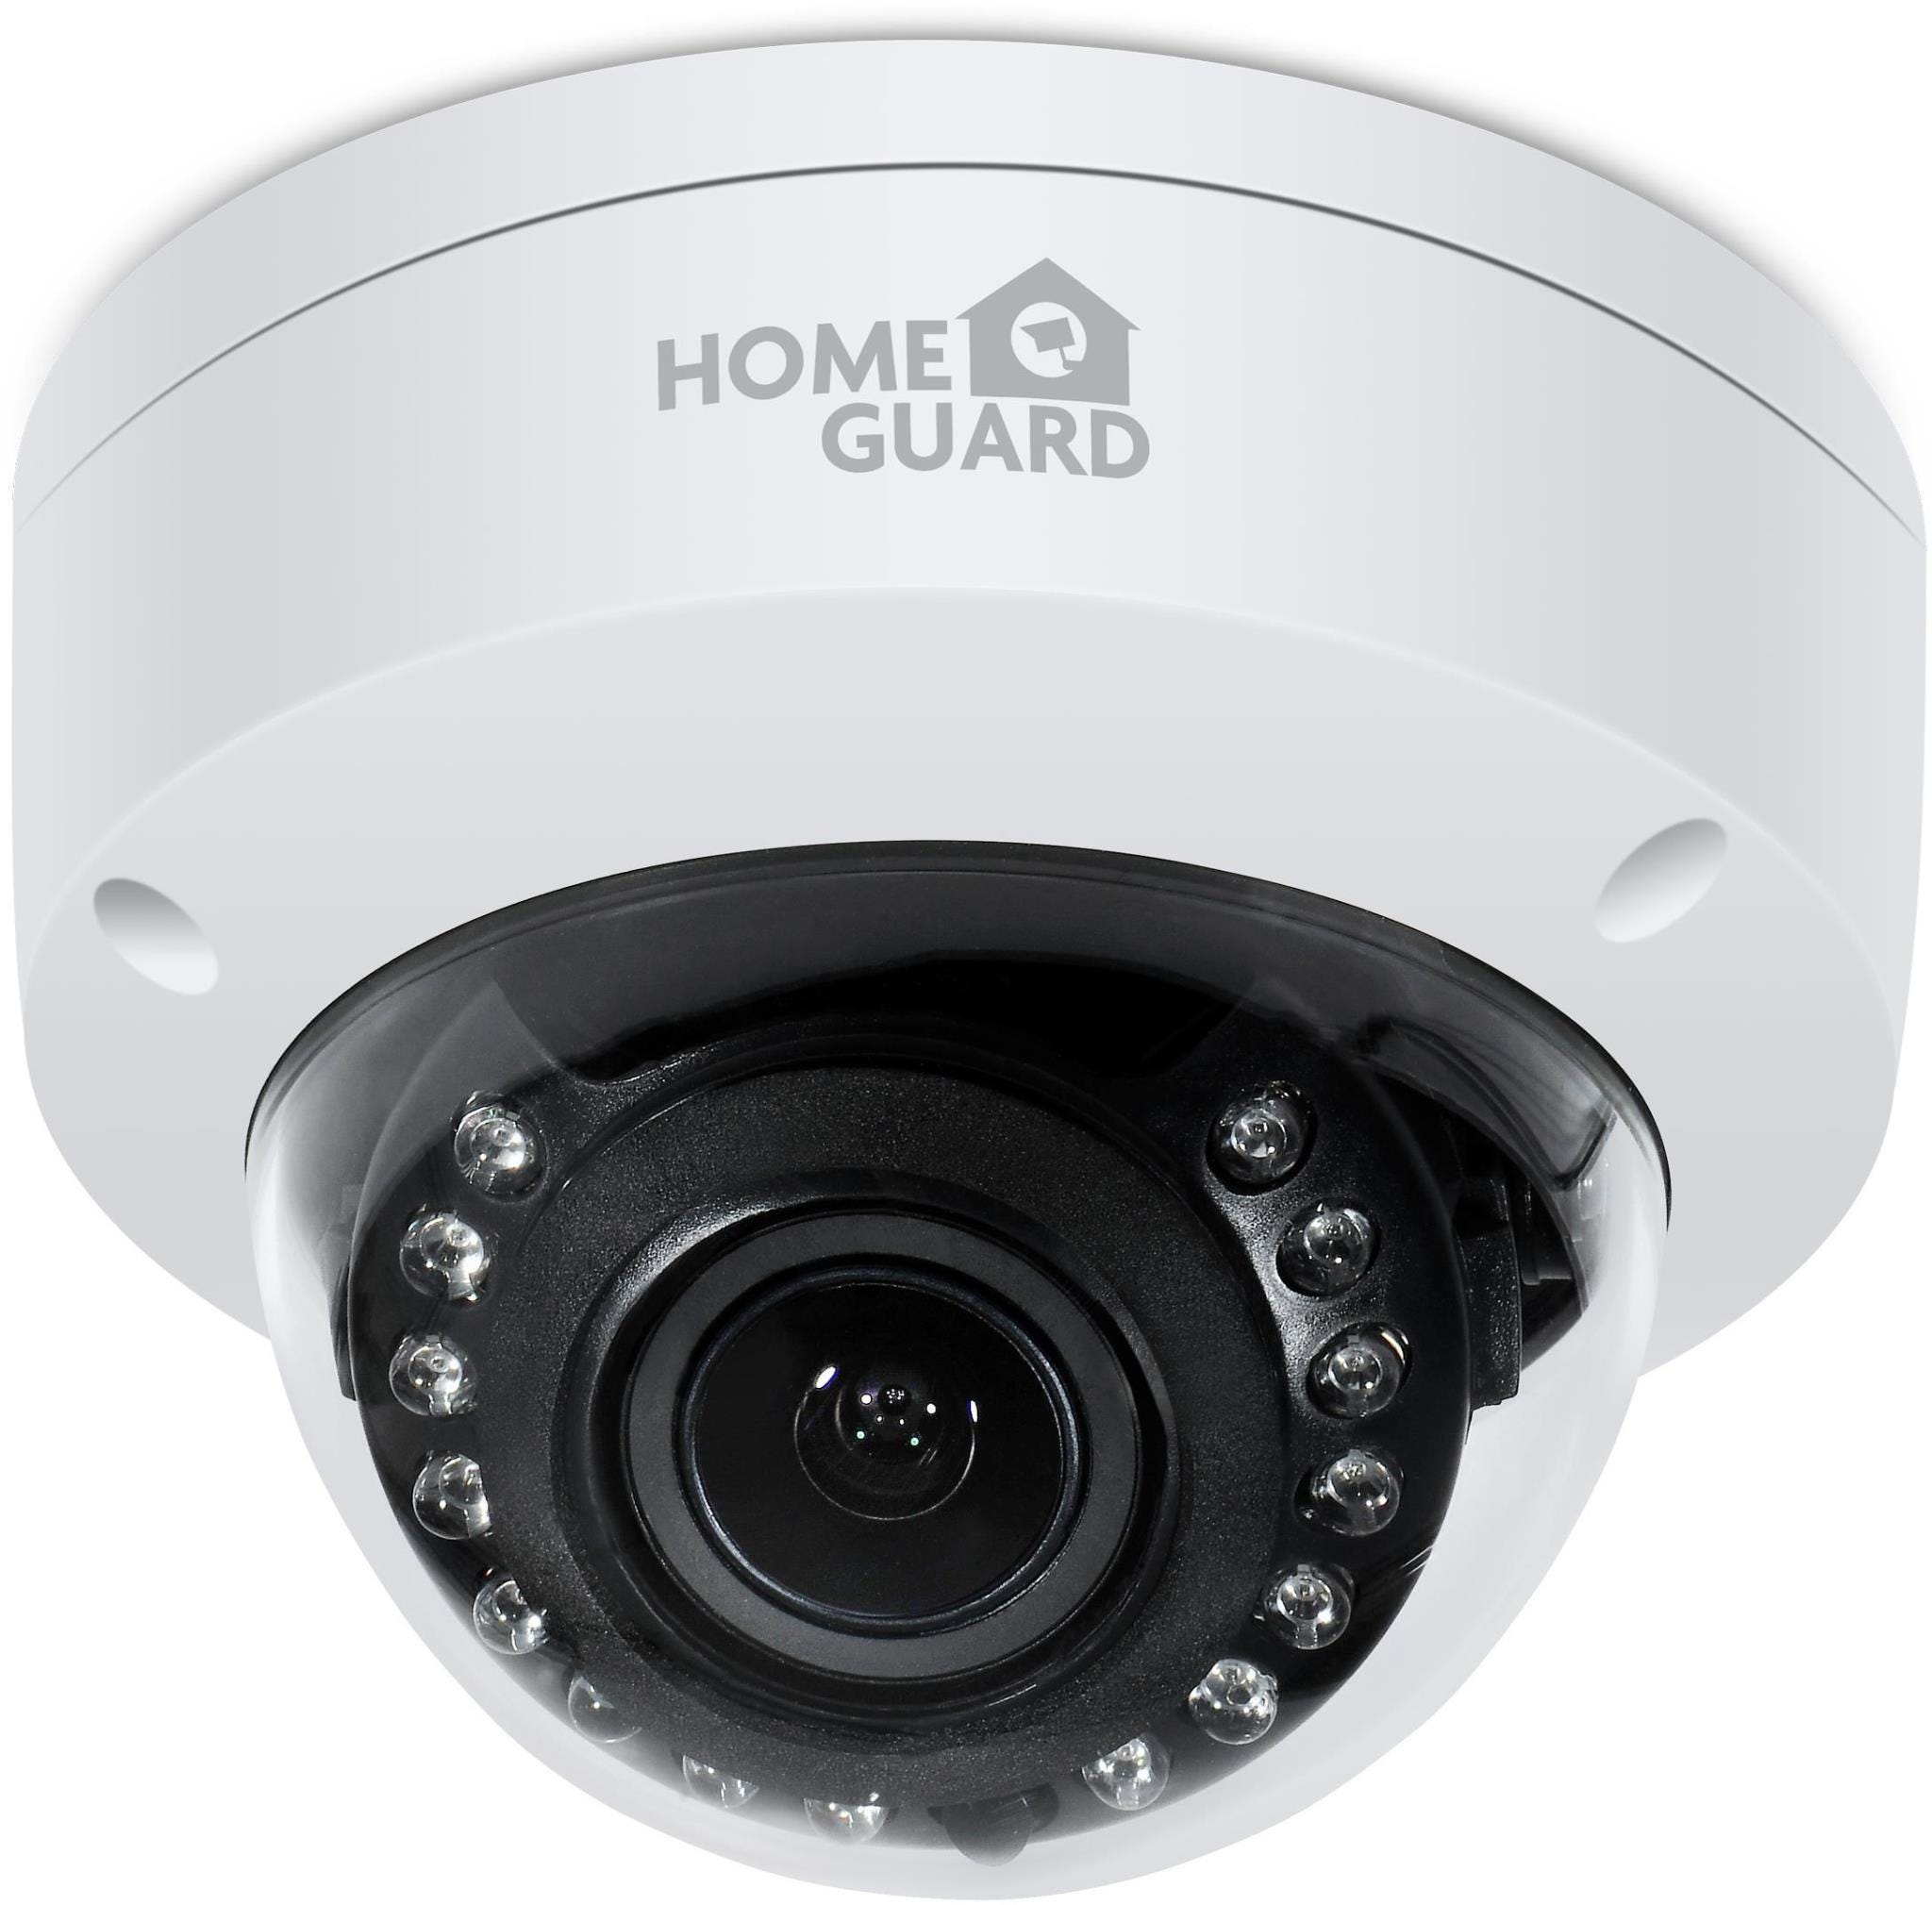 HomeGuard HGPRO829 Indoor / Outdoor Wired Full HD Night-Vision Security Camera - White